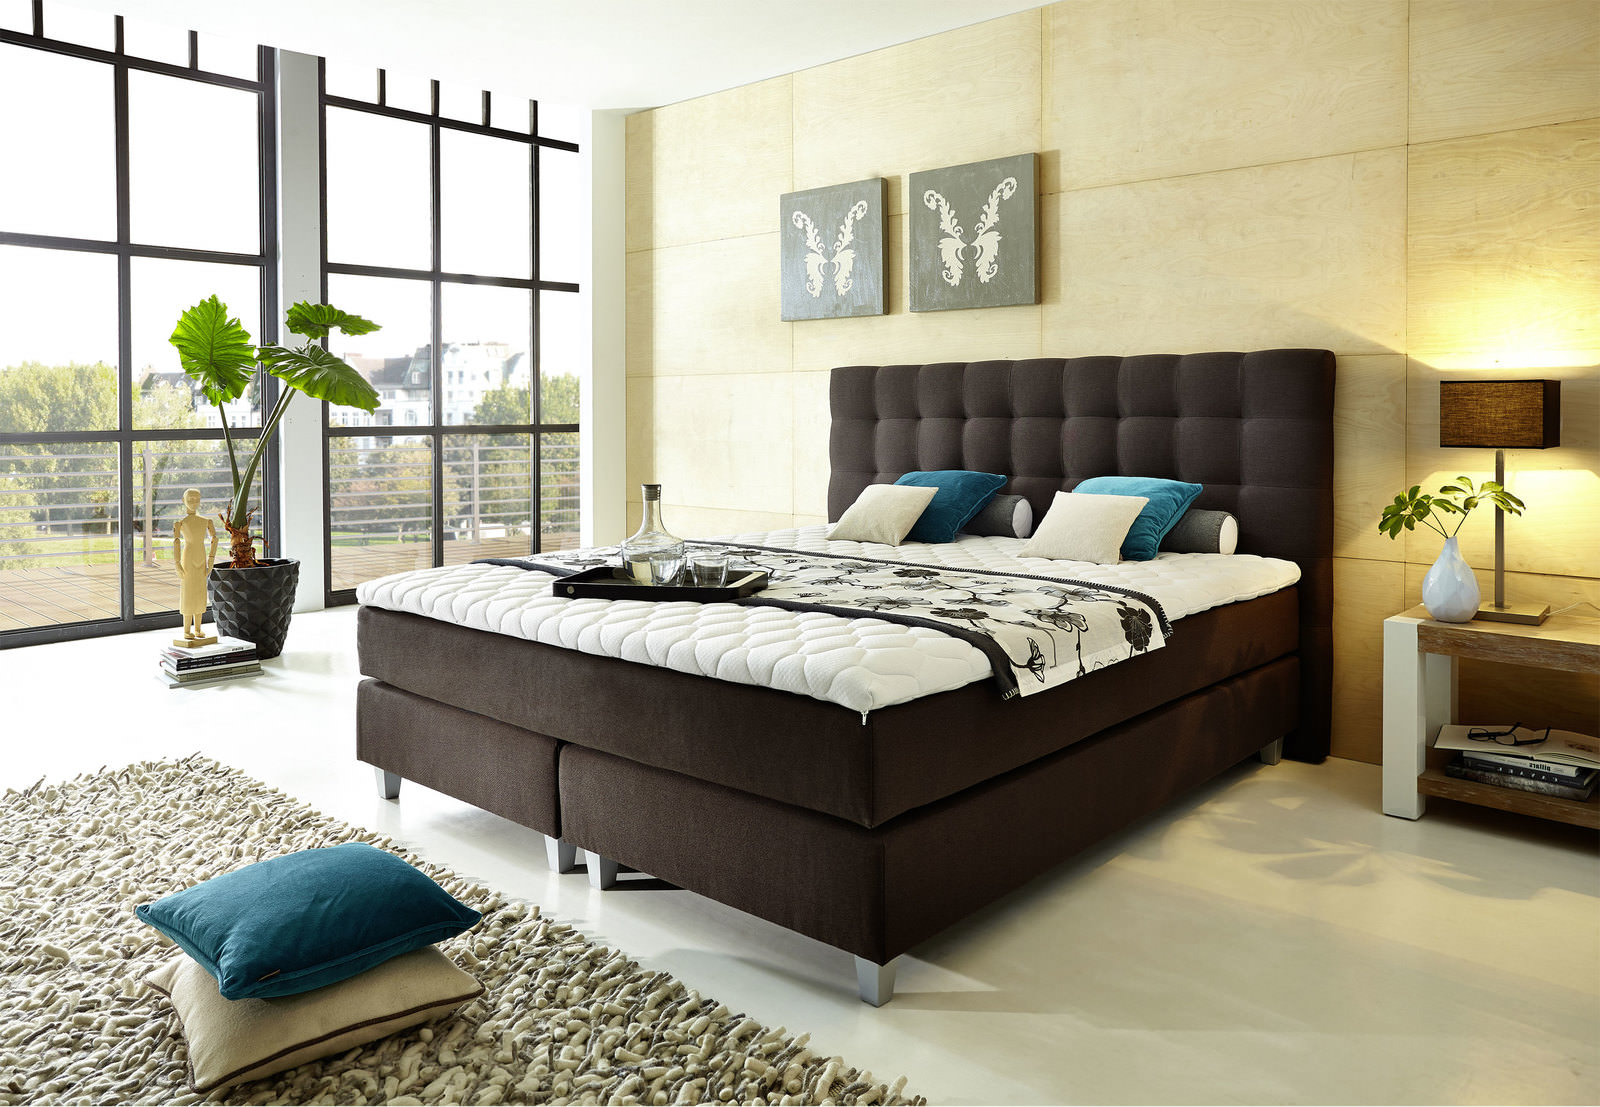 bettdecken aachen bettdecken und kissen entsorgen webschatz bettw sche moderne schlafzimmer. Black Bedroom Furniture Sets. Home Design Ideas